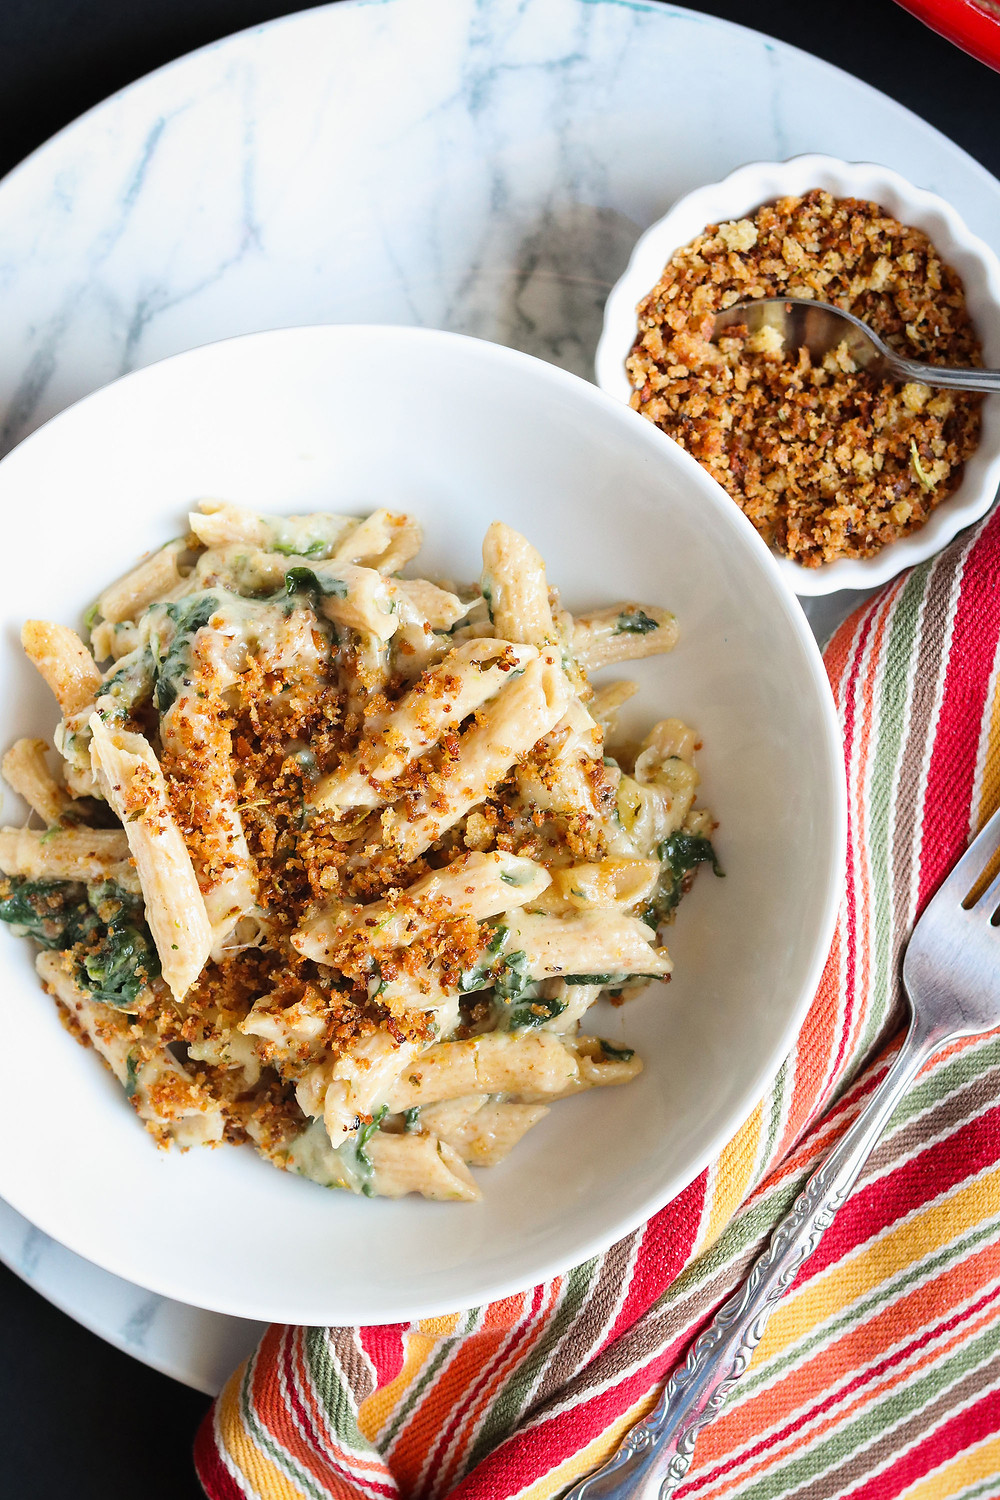 White Bean Mac n' Cheese with whole grain penne rigate, sautéed spinach, and rosemary garlic toasted bread crumbs